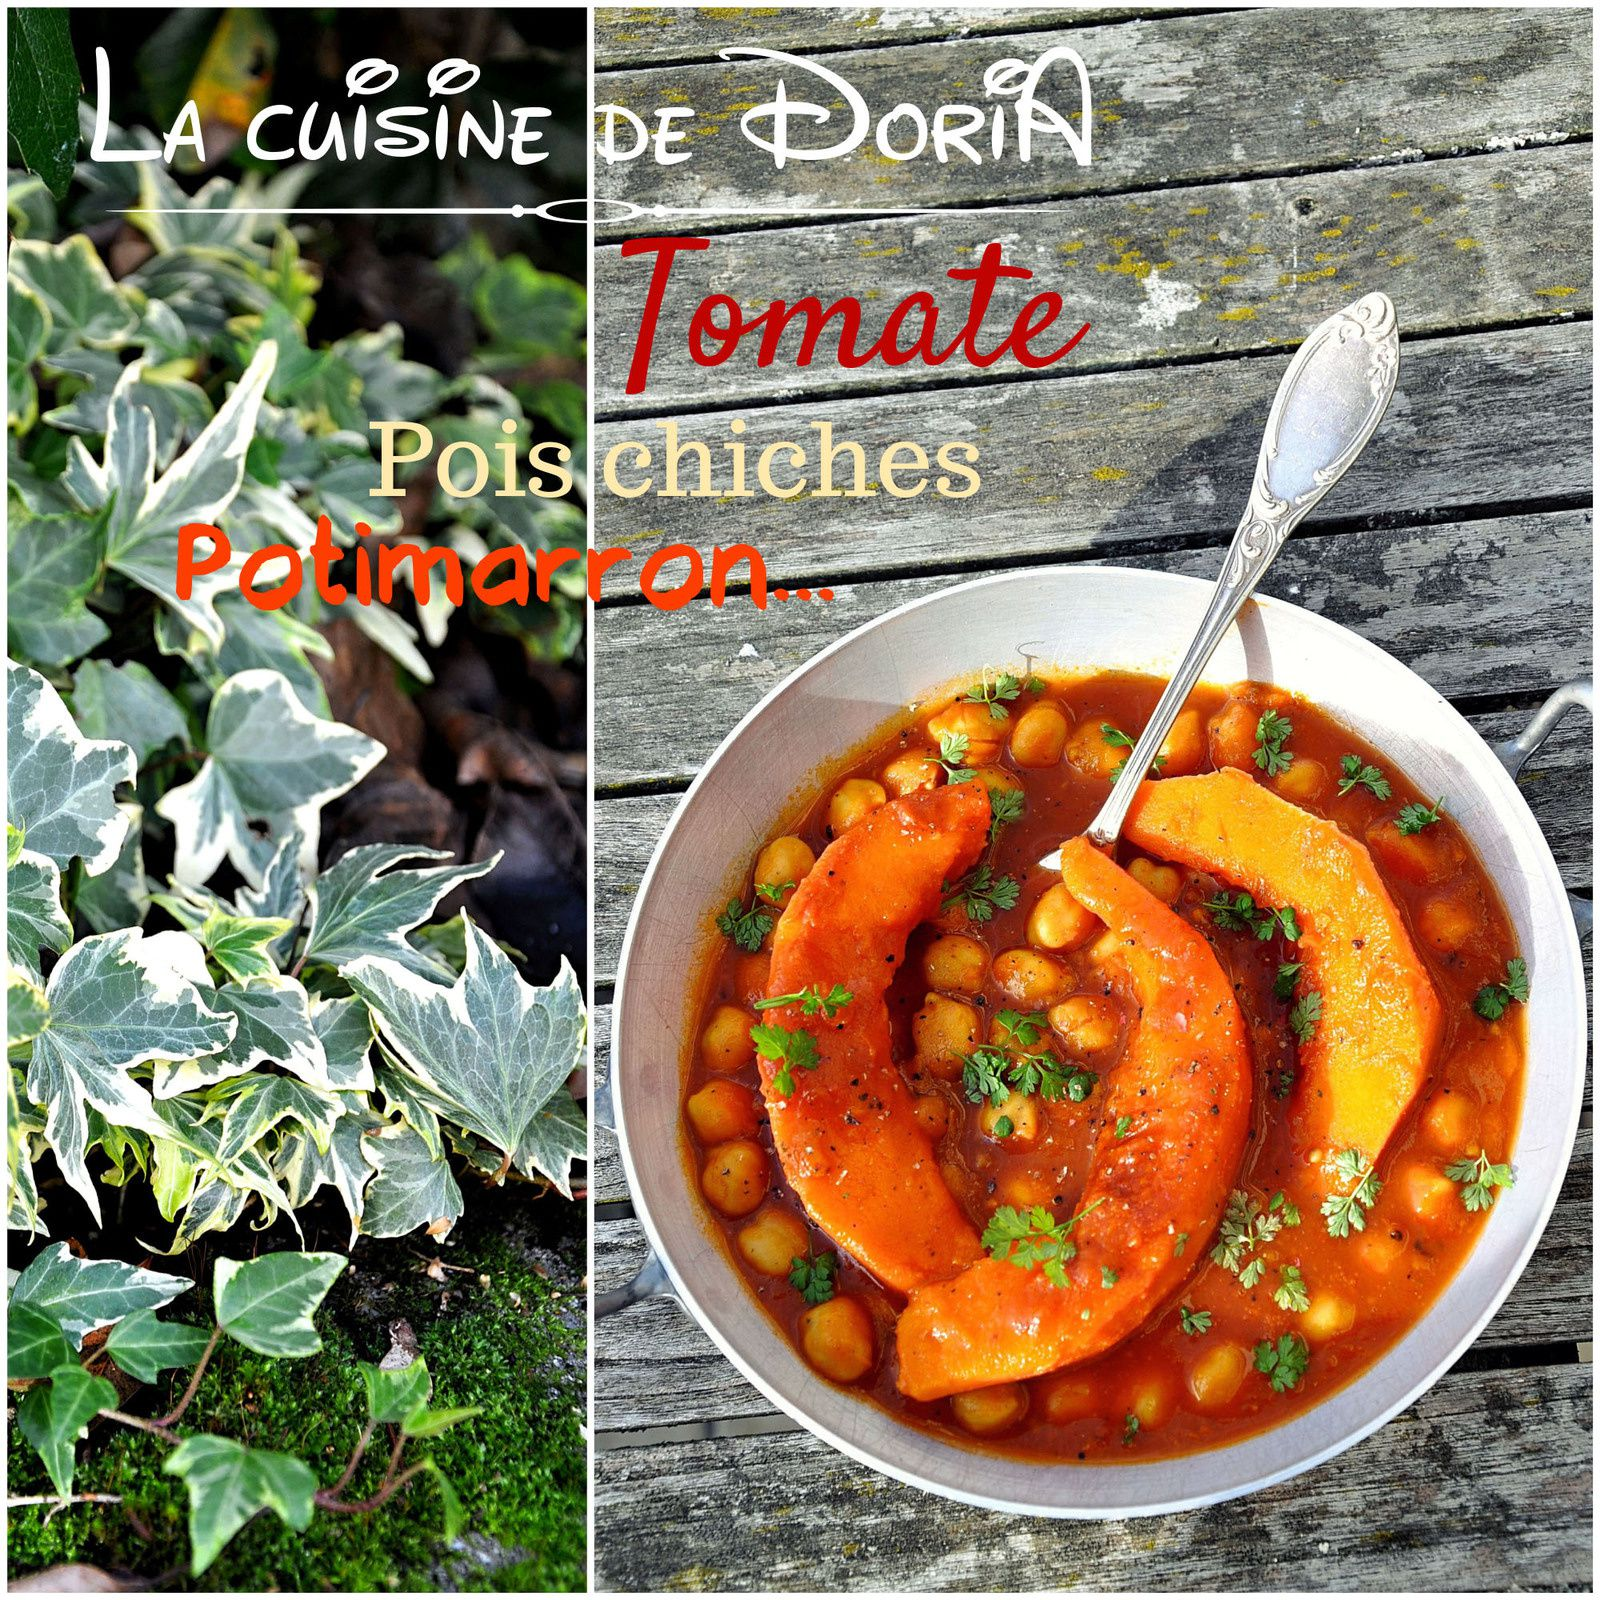 Curry de courge et pois chiches